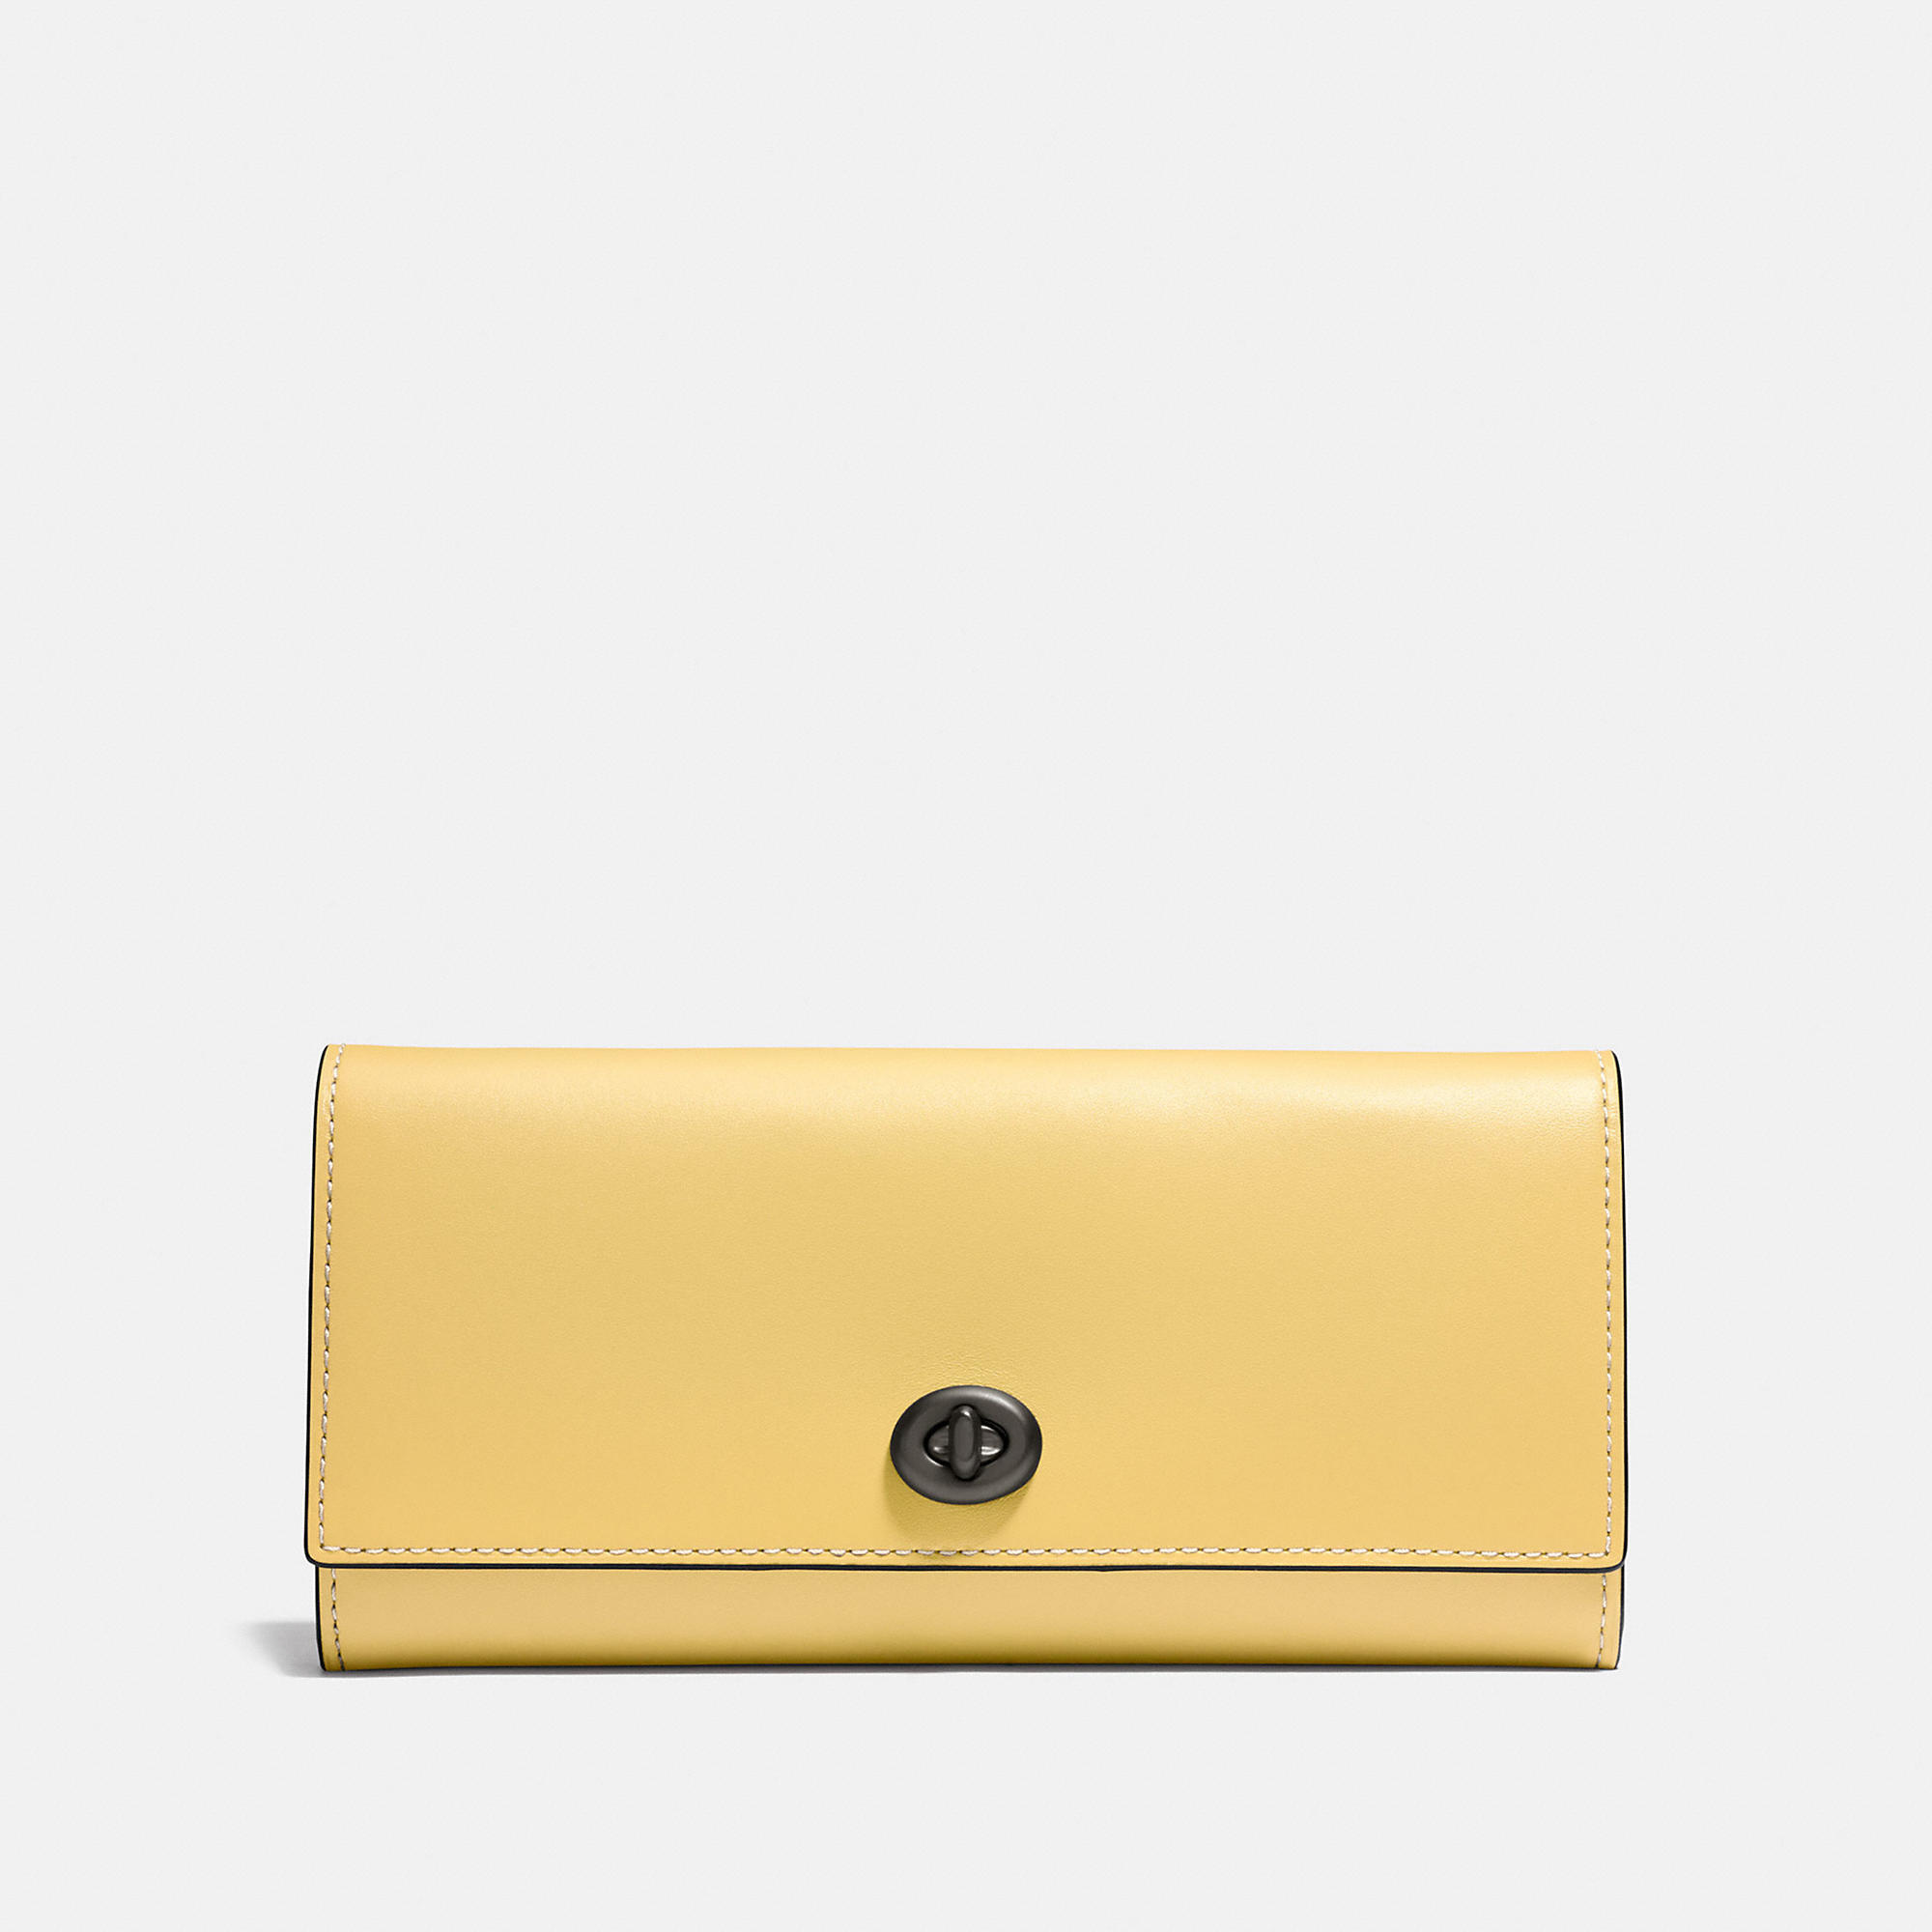 Coach Envelope Wallet In Glovetanned Leather